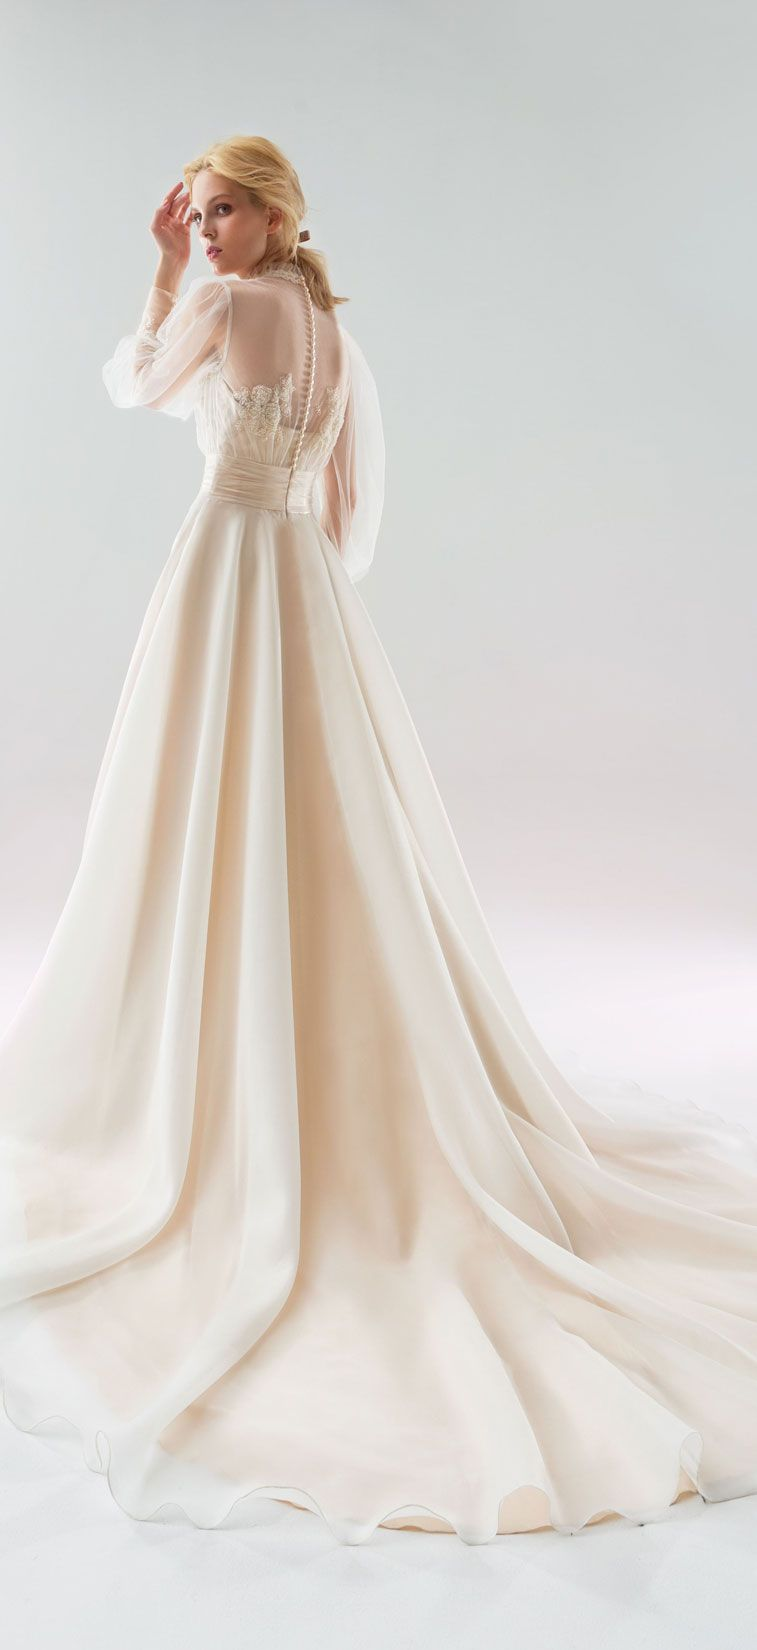 Long sleeves a line wedding dress, Papilio Wedding Dresses - White Wind Bridal Collection #weddingdress #weddinggown ,wedding gown ,wedding dress